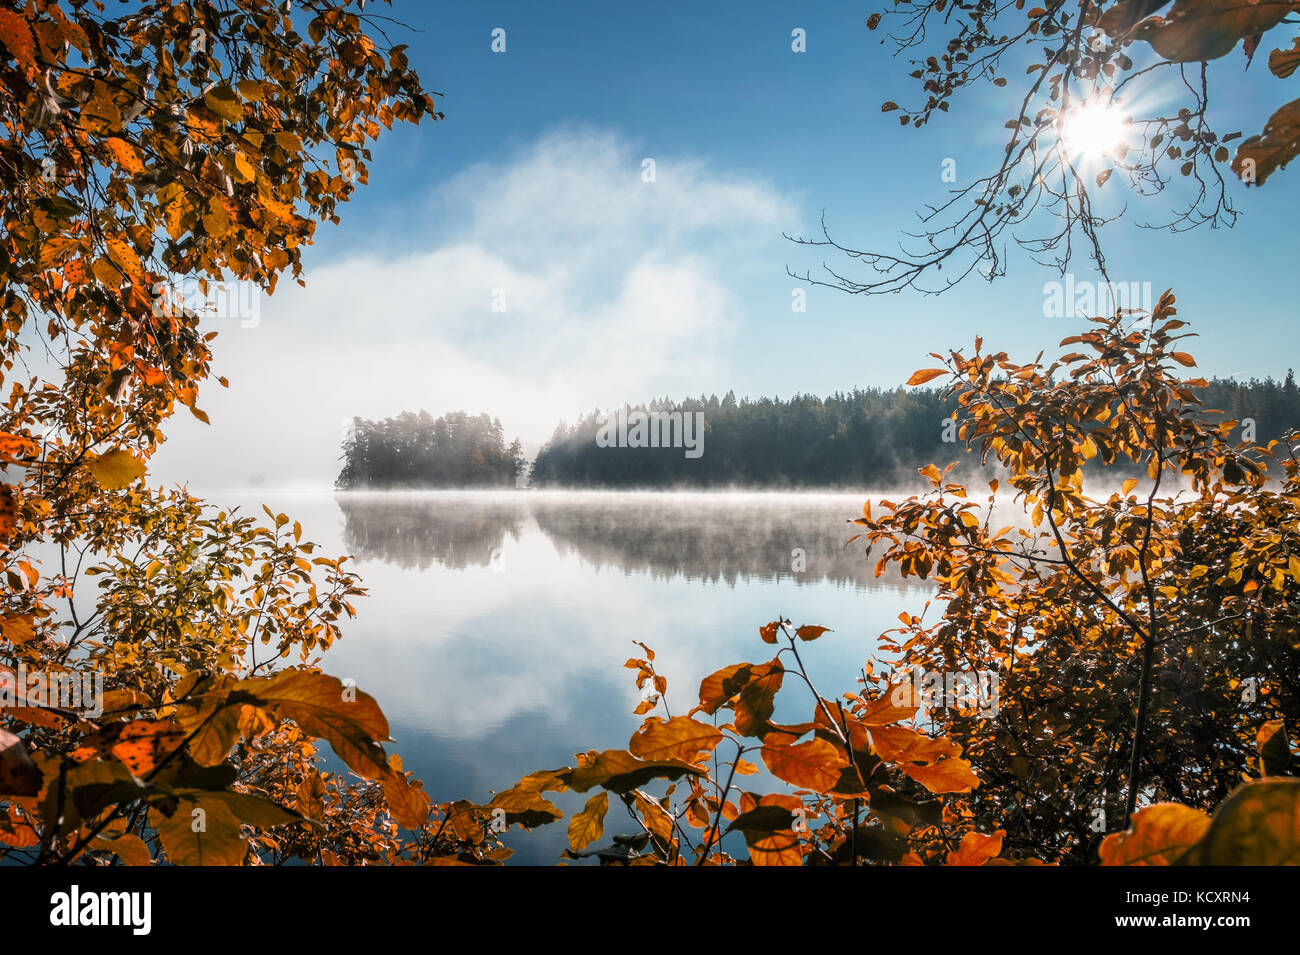 Scenic view with fall colors and peaceful lake at autumn morning in Liesjärvi National Park, Finland - Stock Image